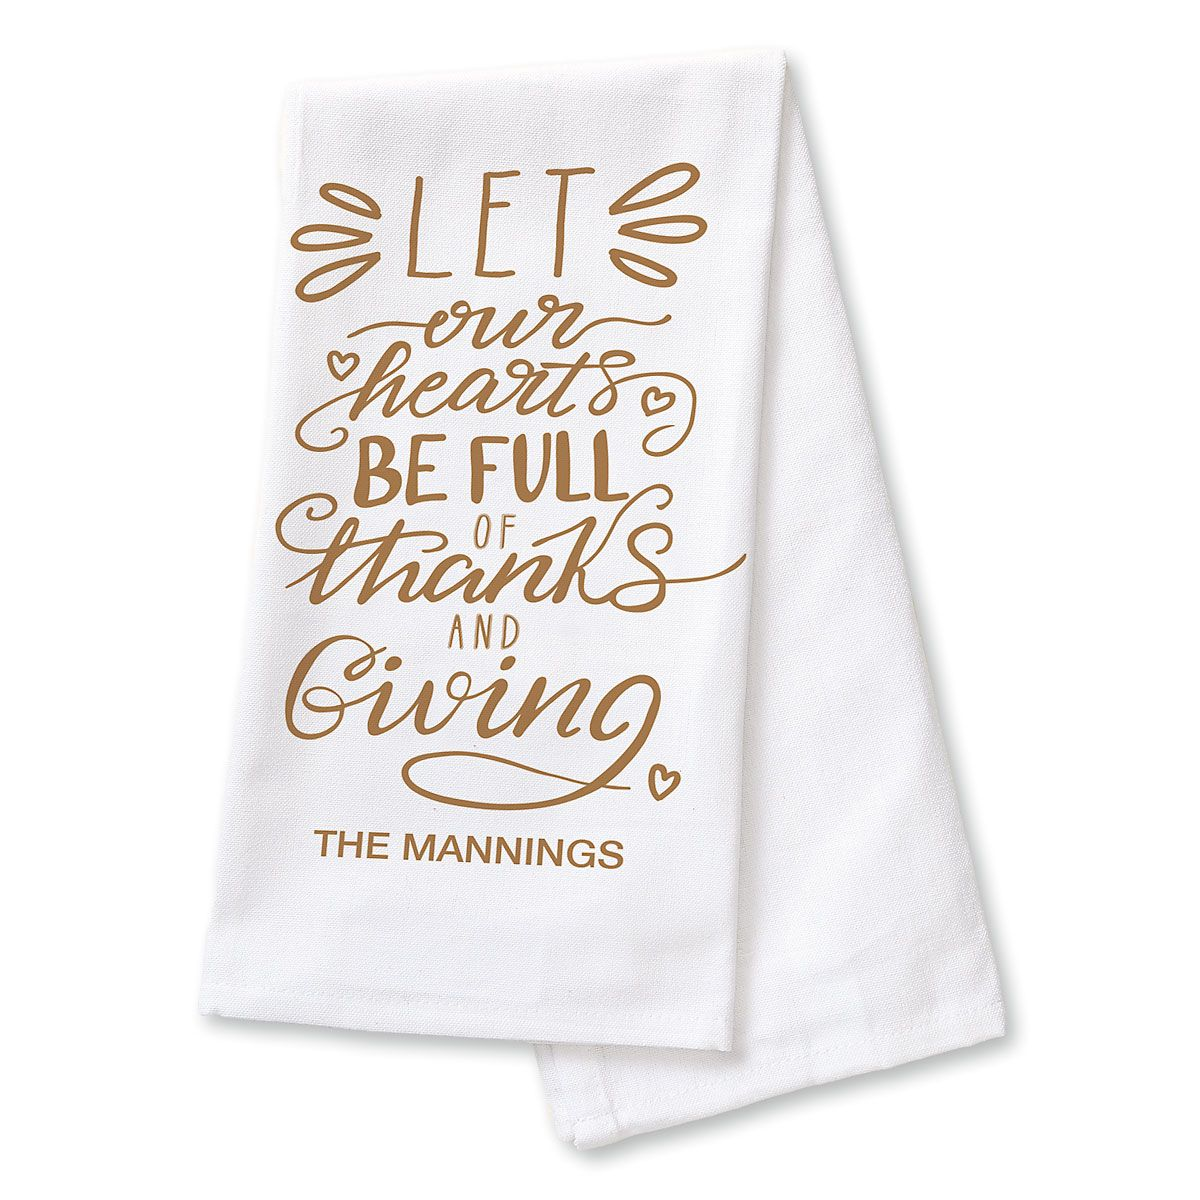 Personalized Thanks & Giving Dish Towel